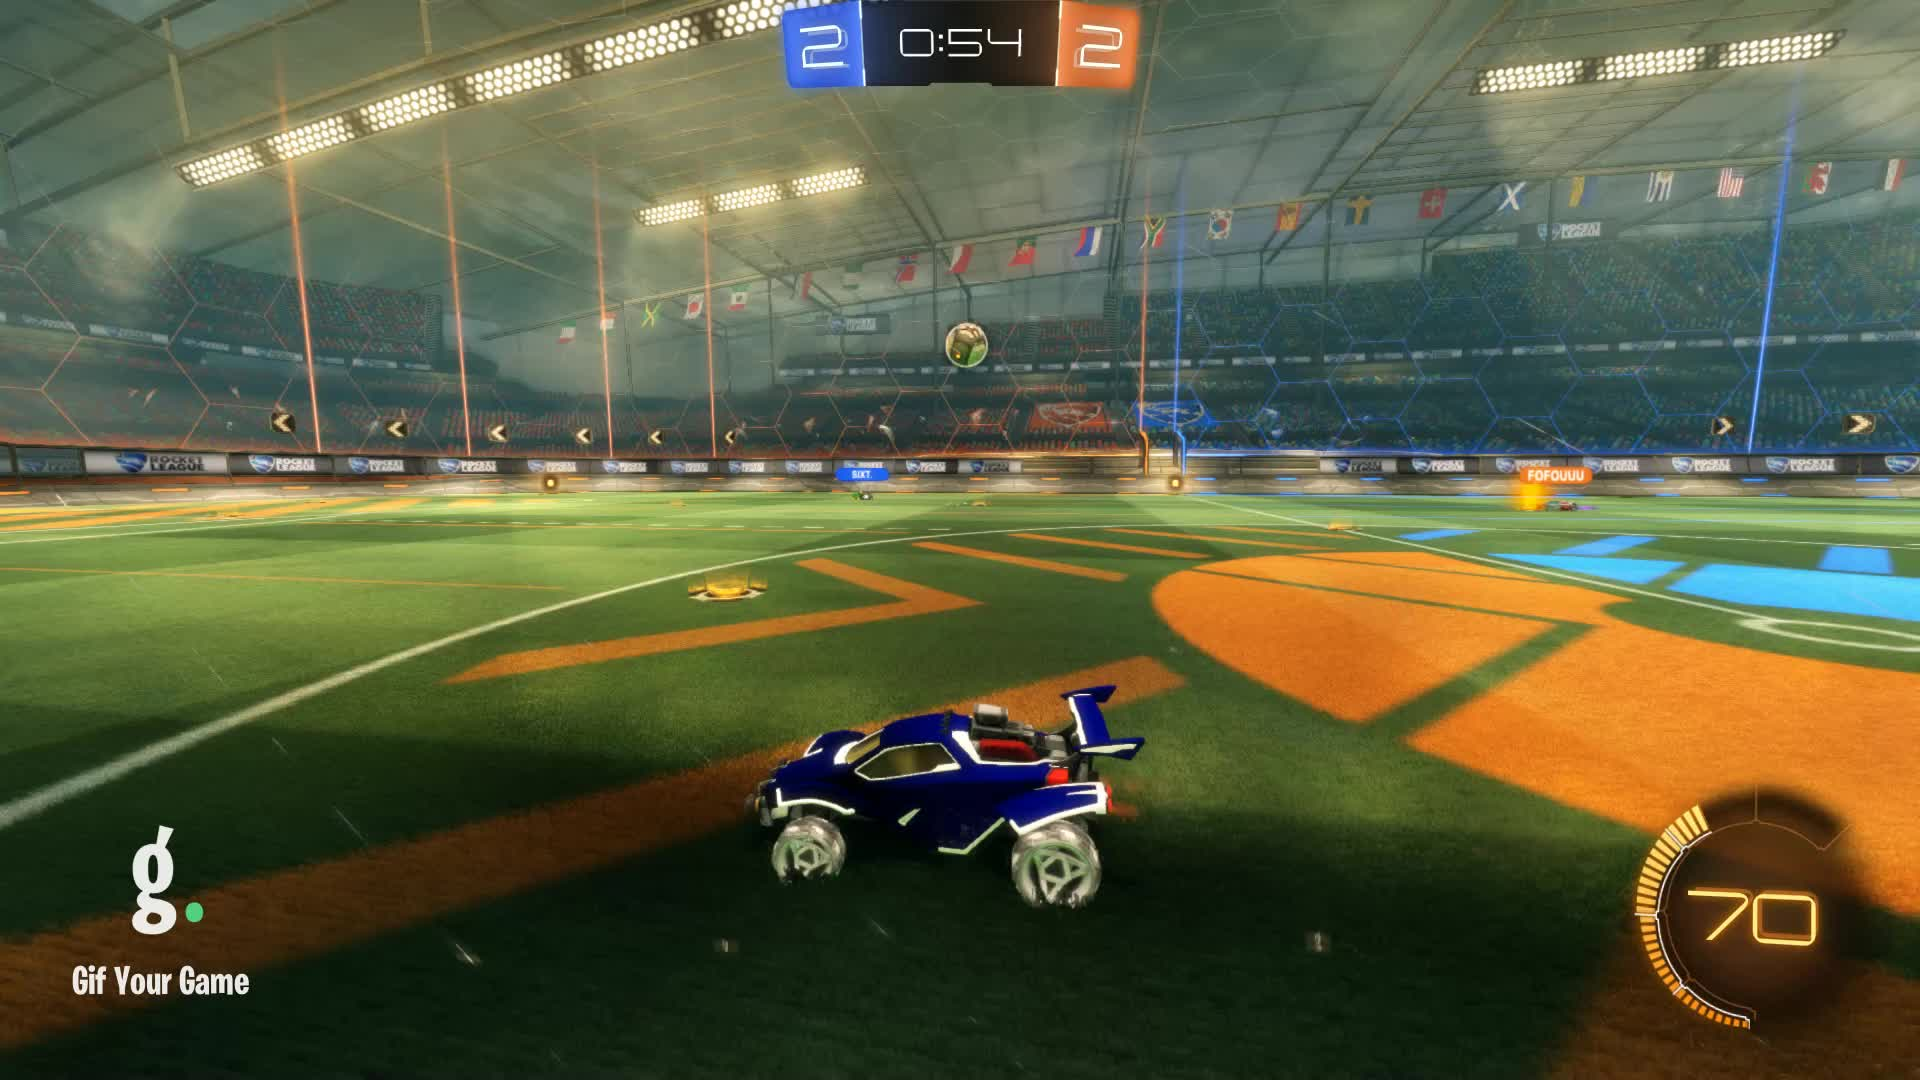 Gif Your Game, GifYourGame, Goal, Horizon, Rocket League, RocketLeague, Goal 5: Horizon GIFs